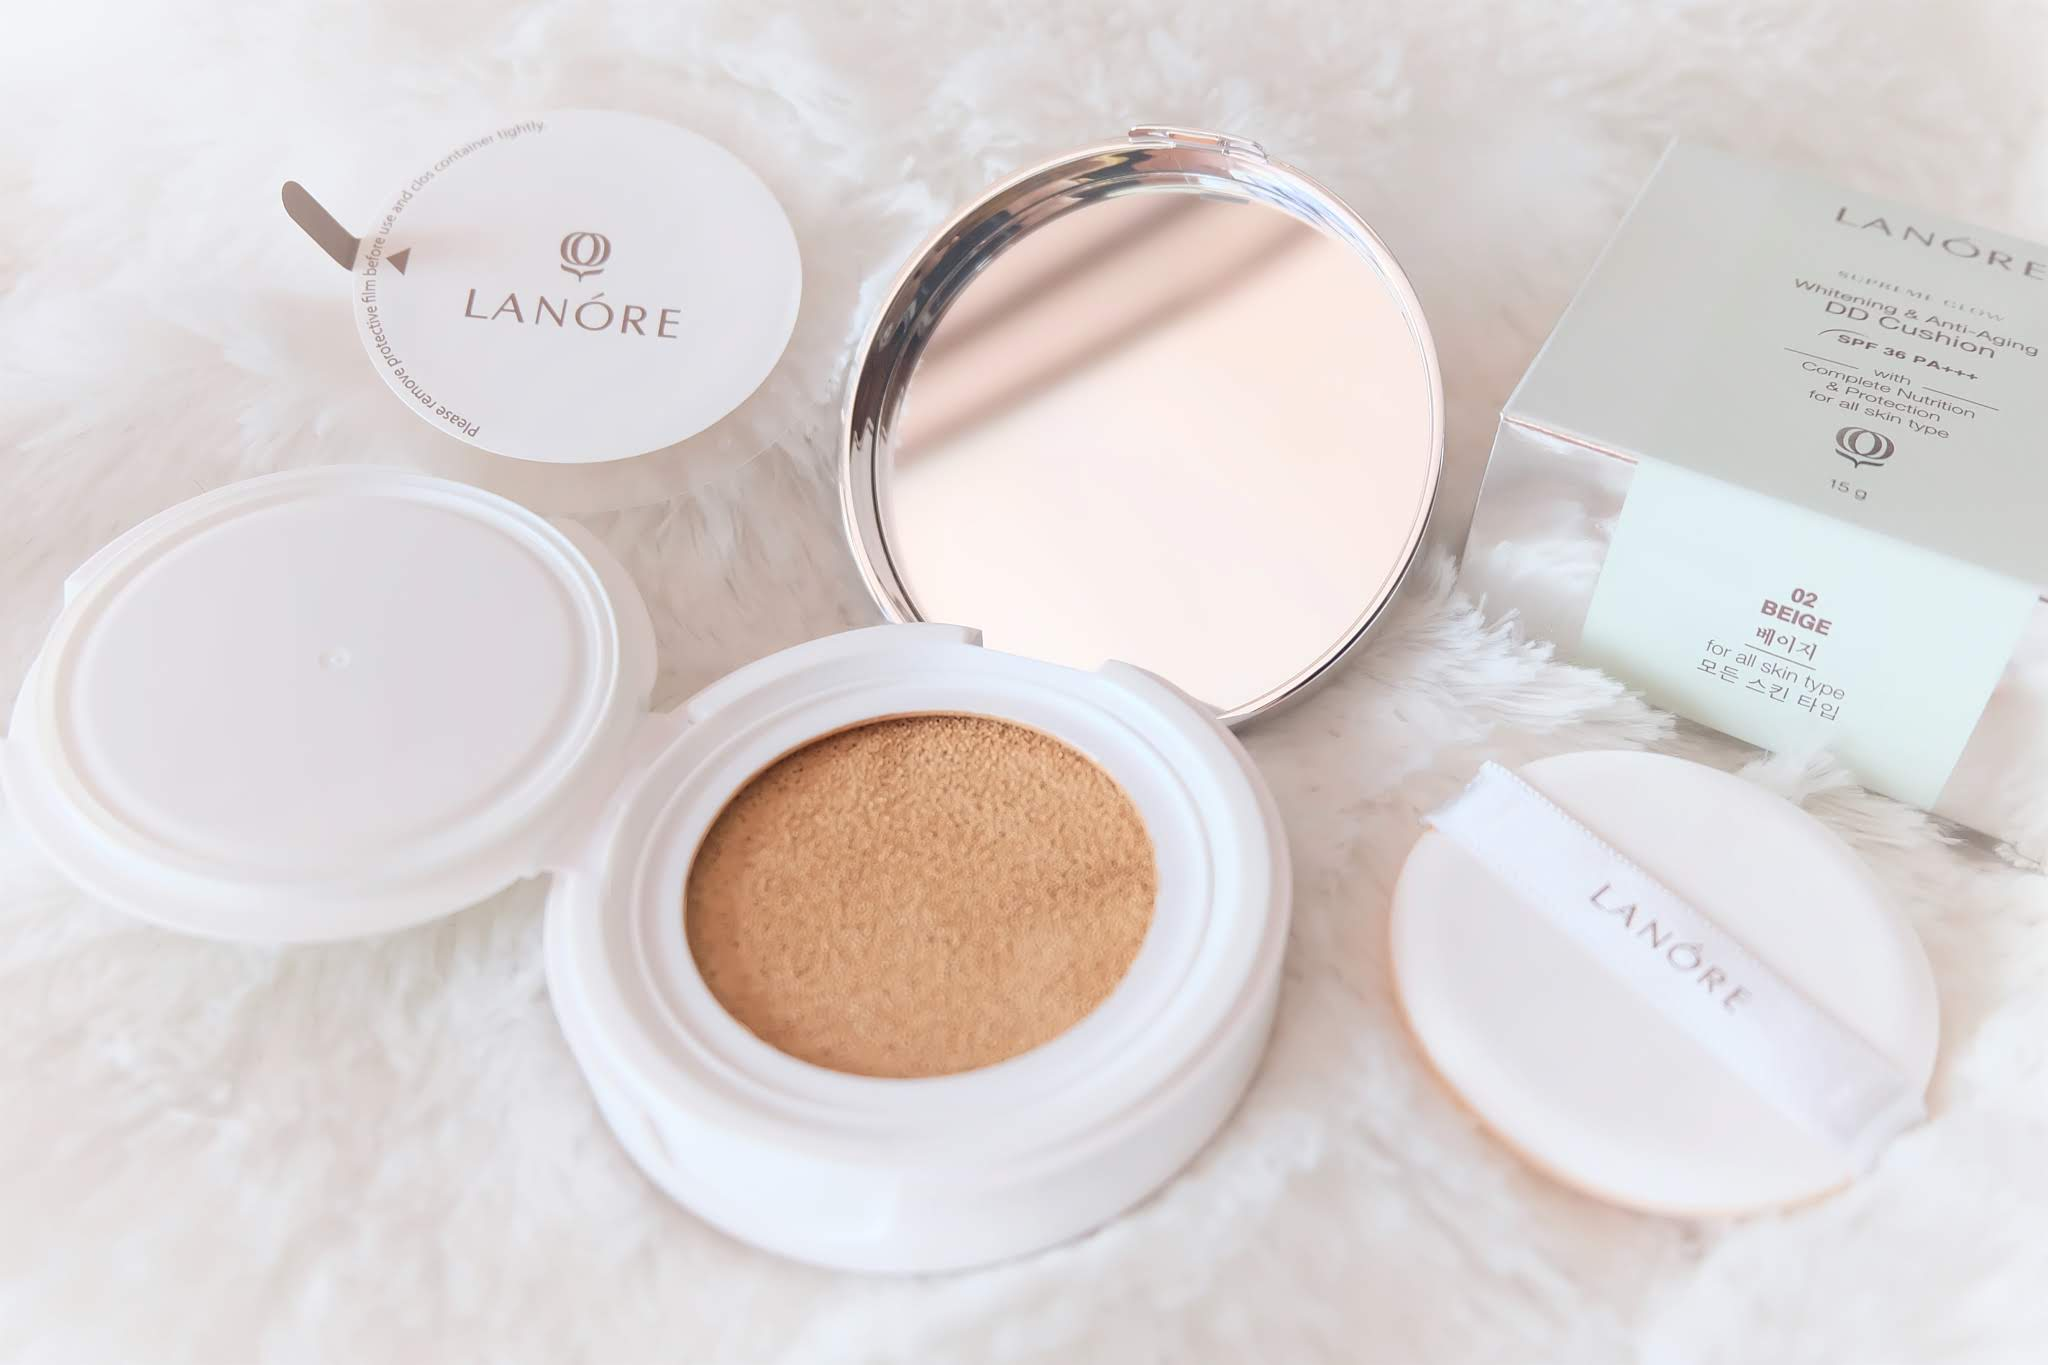 [Review] Lanore Whitening and Anti Aging DD Cushion